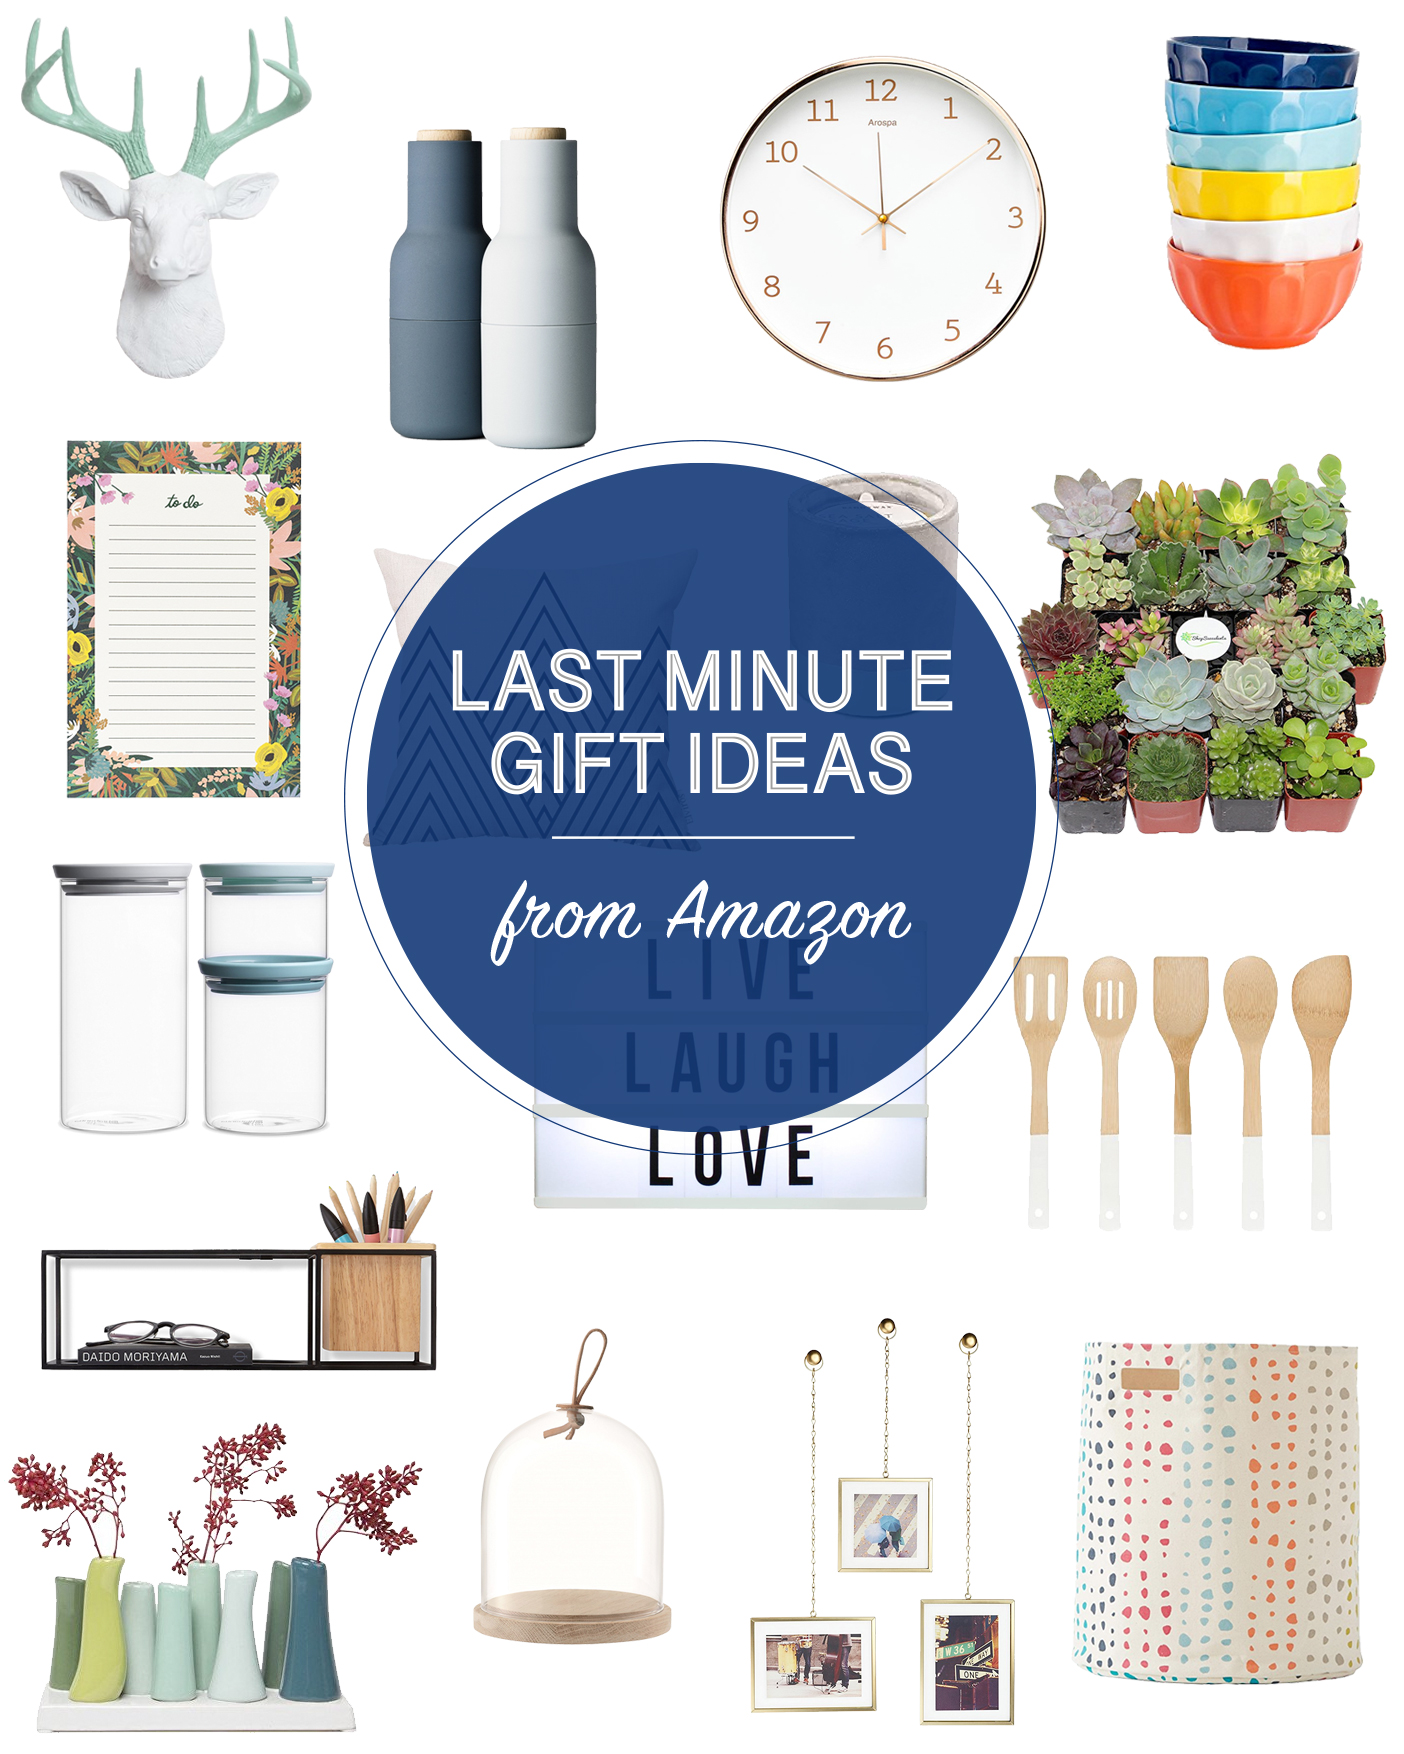 In need of some last minute holiday gift ideas? Here's a great list from Amazon! Take advantage of their two day shipping with a Prime membership. // last minute gift ideas for the home, last minute modern gift ideas